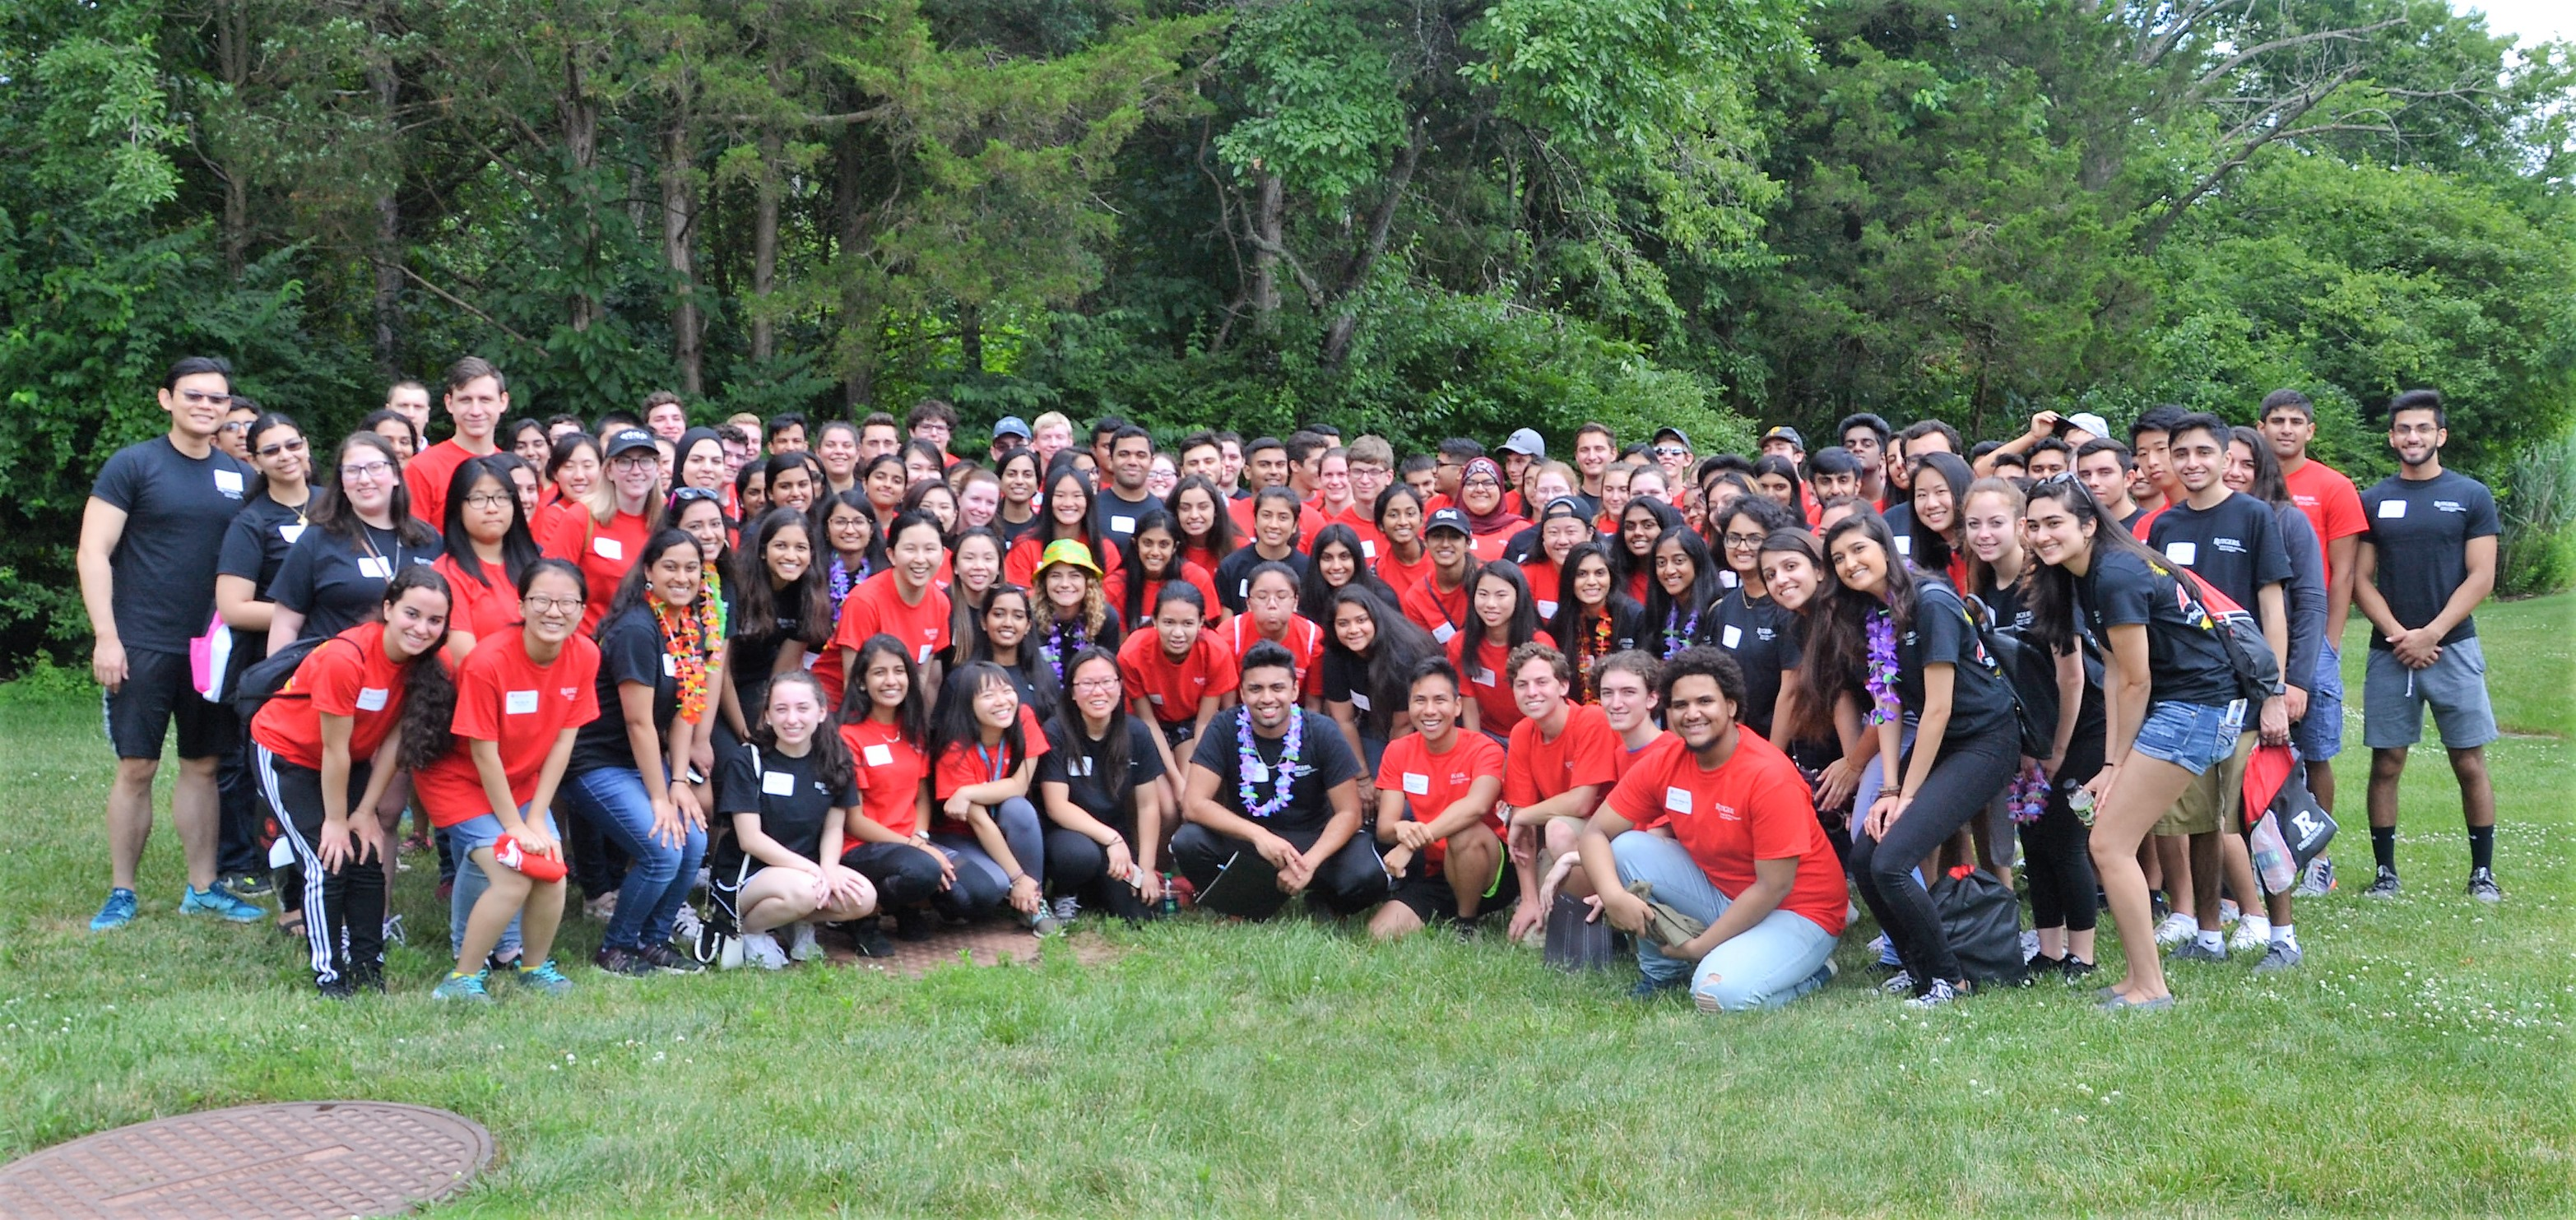 Group of Peer Mentors & Mentees at the 2018 Summer Gathering